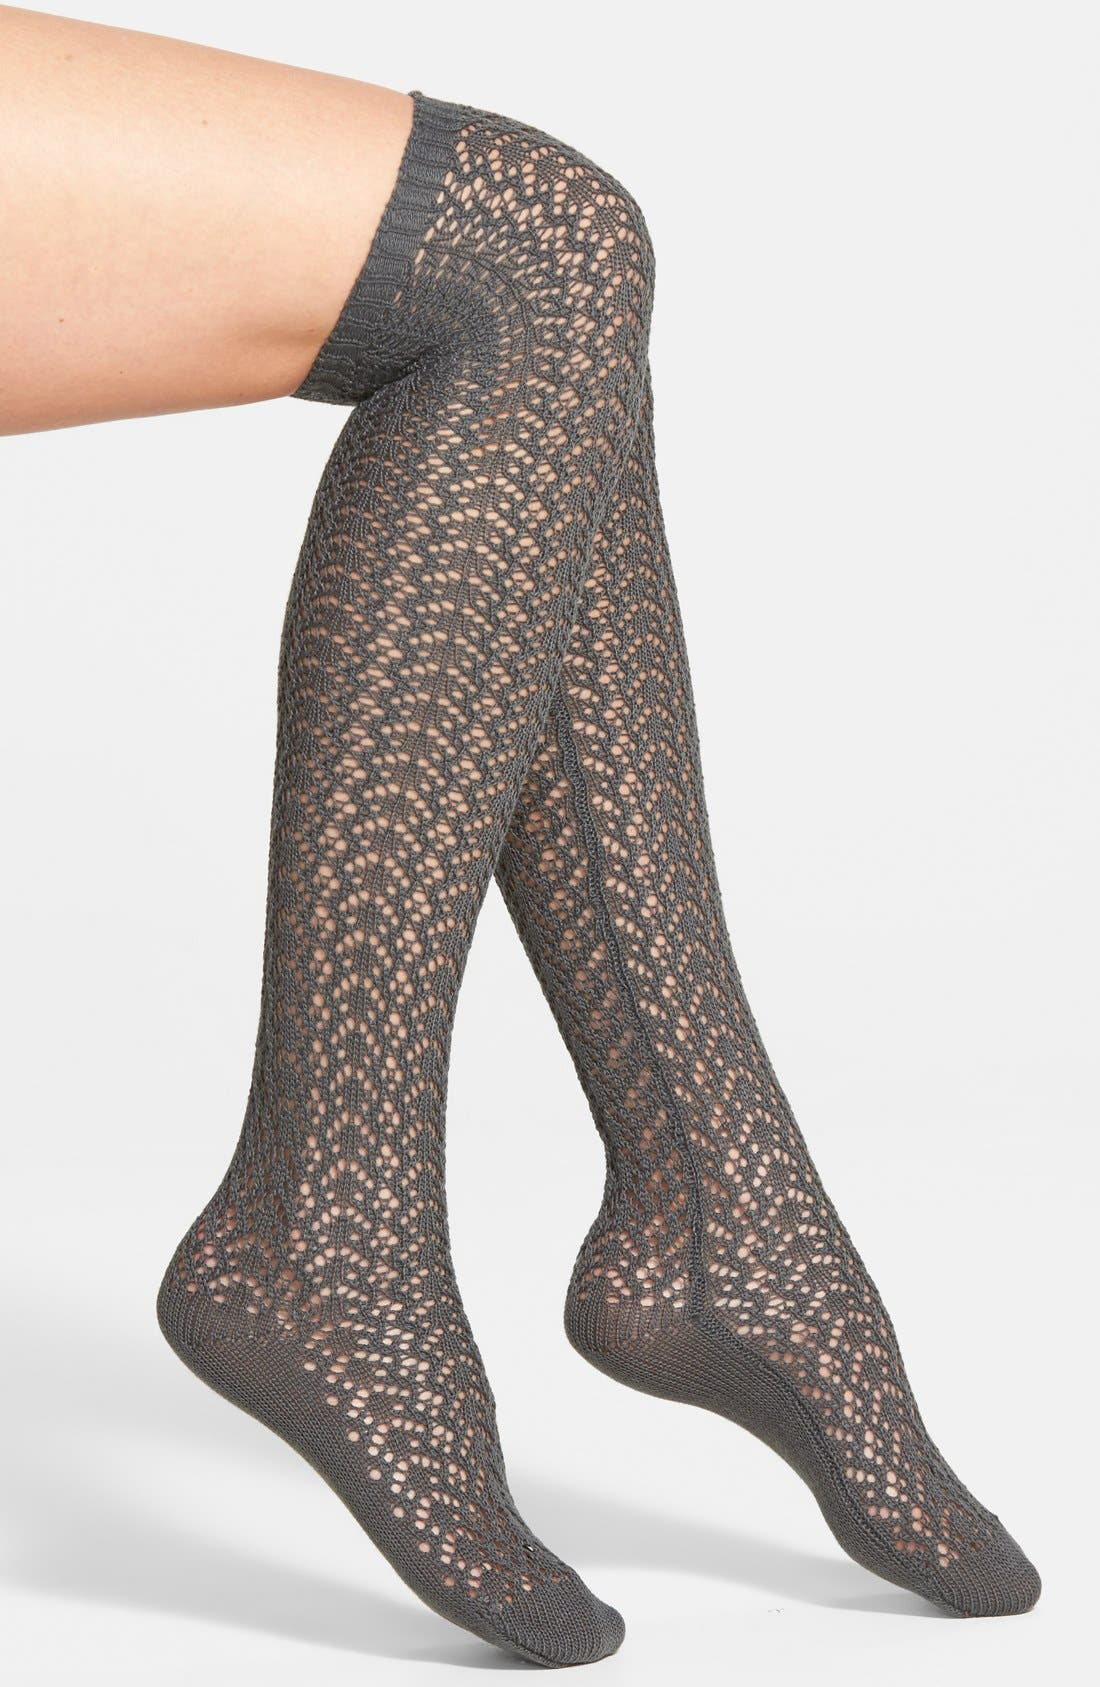 'Sailors' Openwork Knit Over the Knee Socks, Main, color, 065